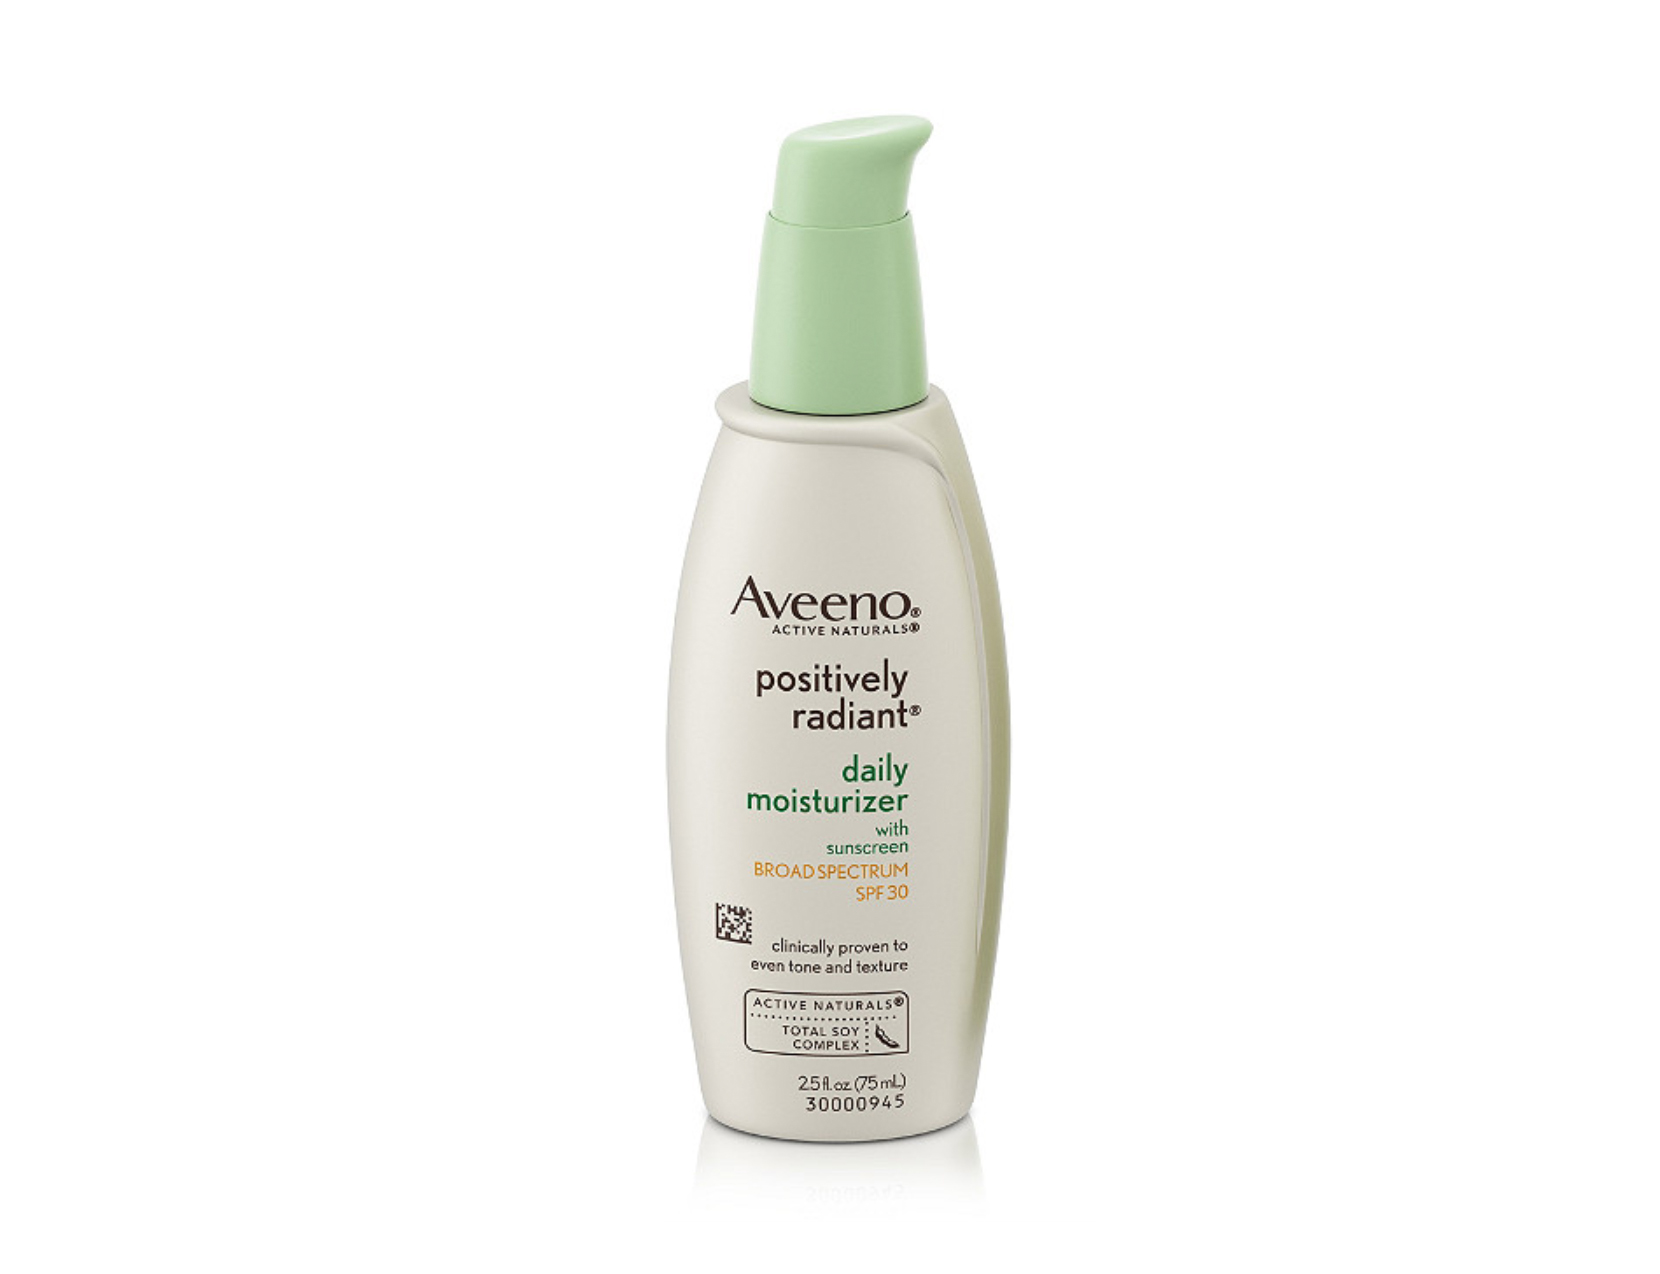 Image result for Aveeno positively radiantdaily moisturizer with sunscreen SPF 30